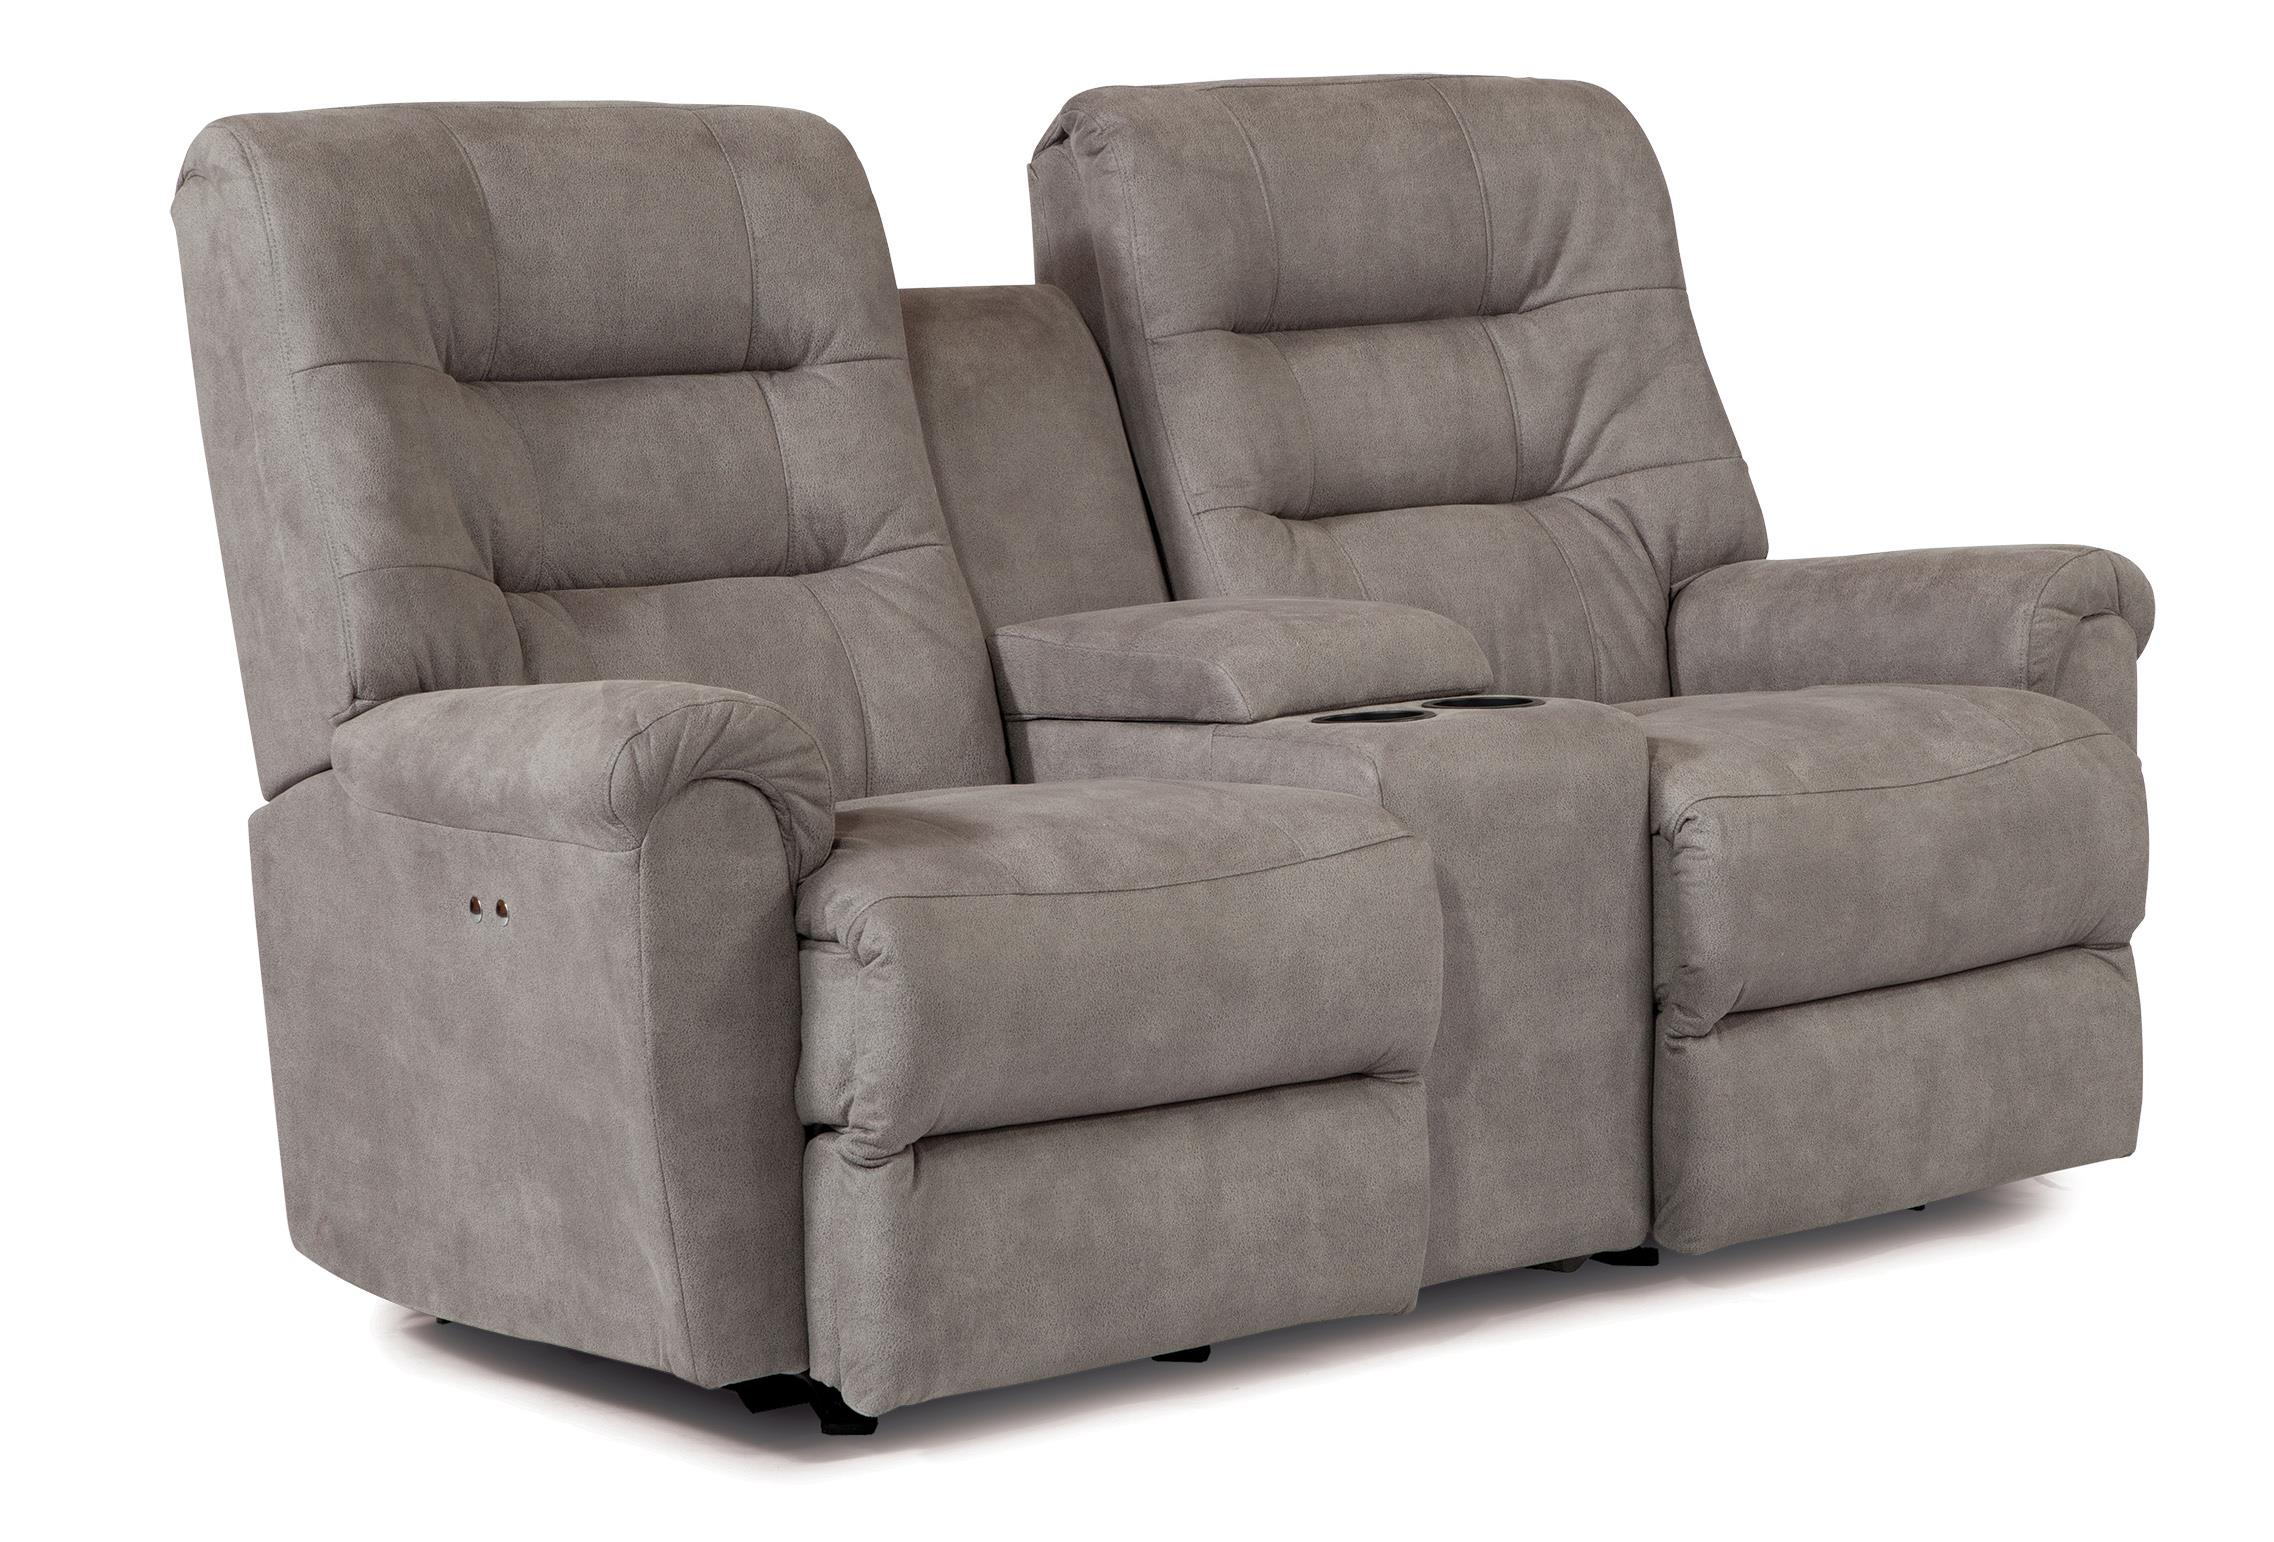 Best Home Furnishings Langston Rocker Recliner Loveseat with Console - Item Number: L820RC7-25273